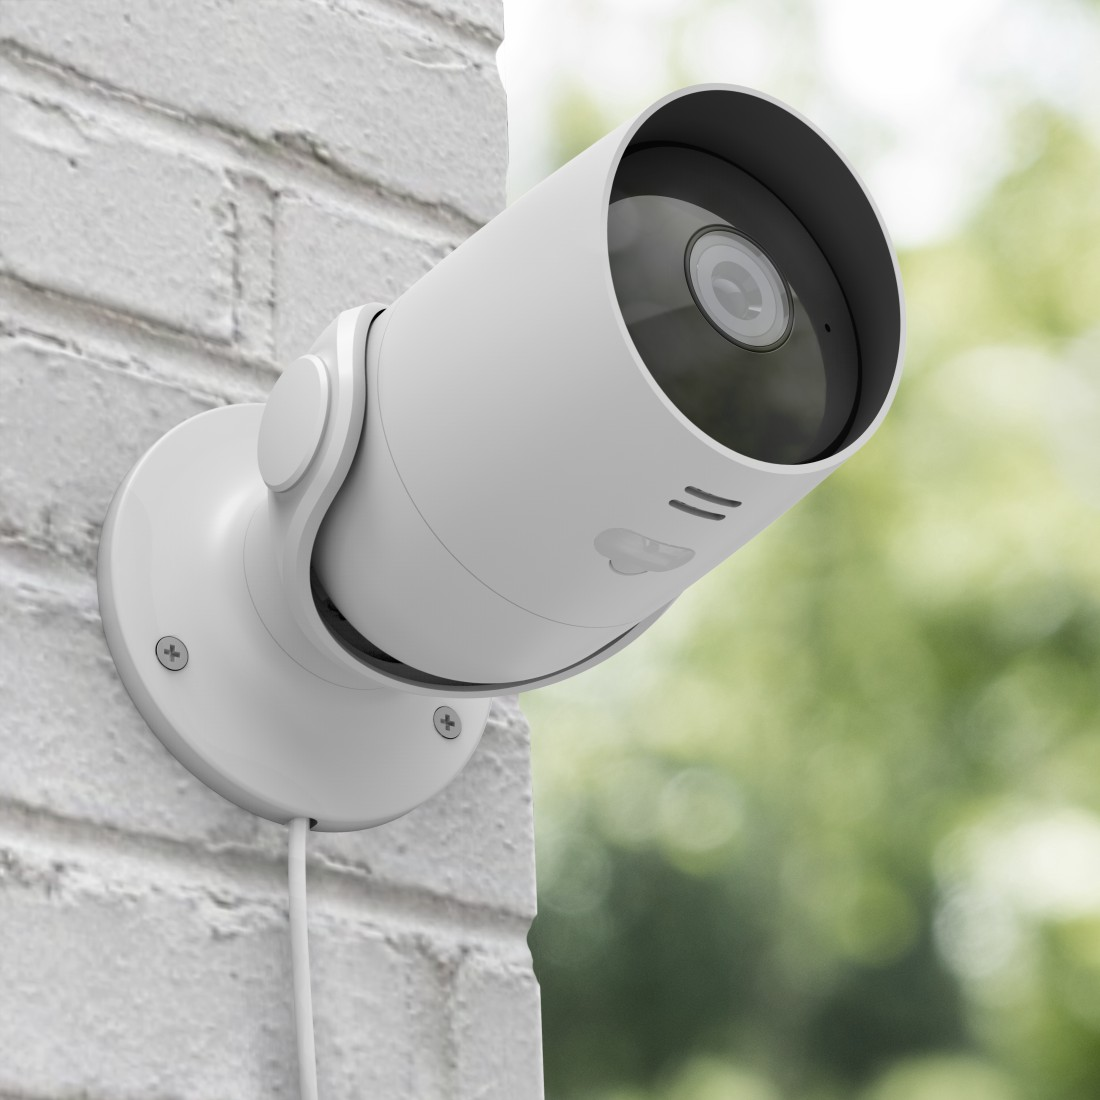 awx High-Res Appliance - Hama, Surveillance Camera, WLAN, for Outdoors, without Hub, Night Vision, 1080p, white